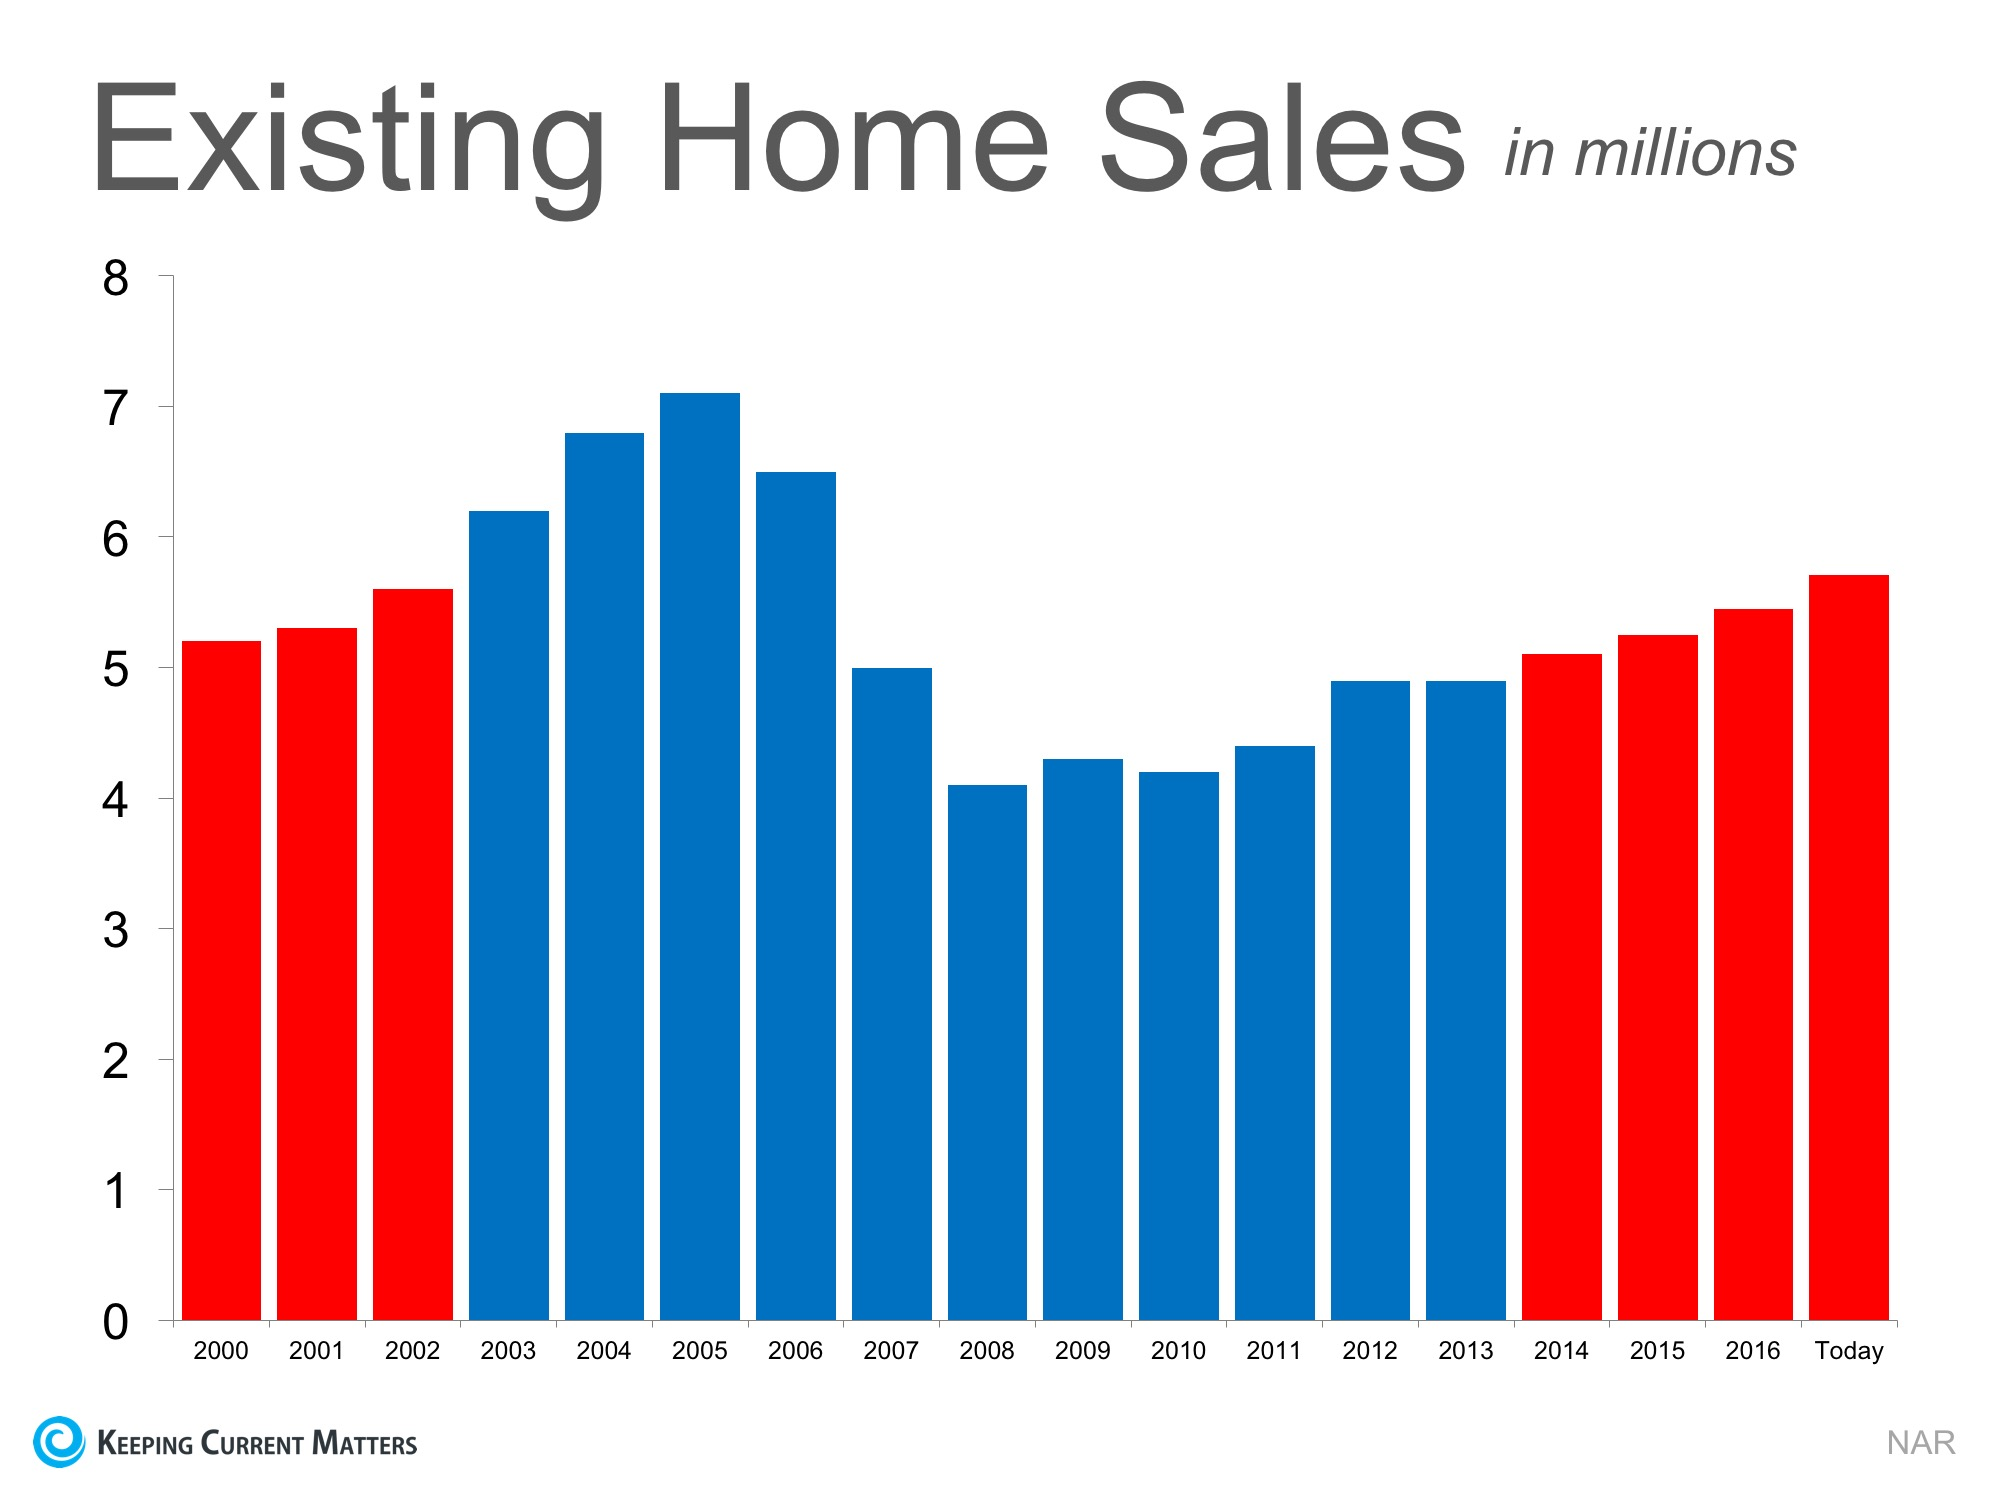 Is the Current Pace of Home Sales Maintainable?   Keeping Current Matters